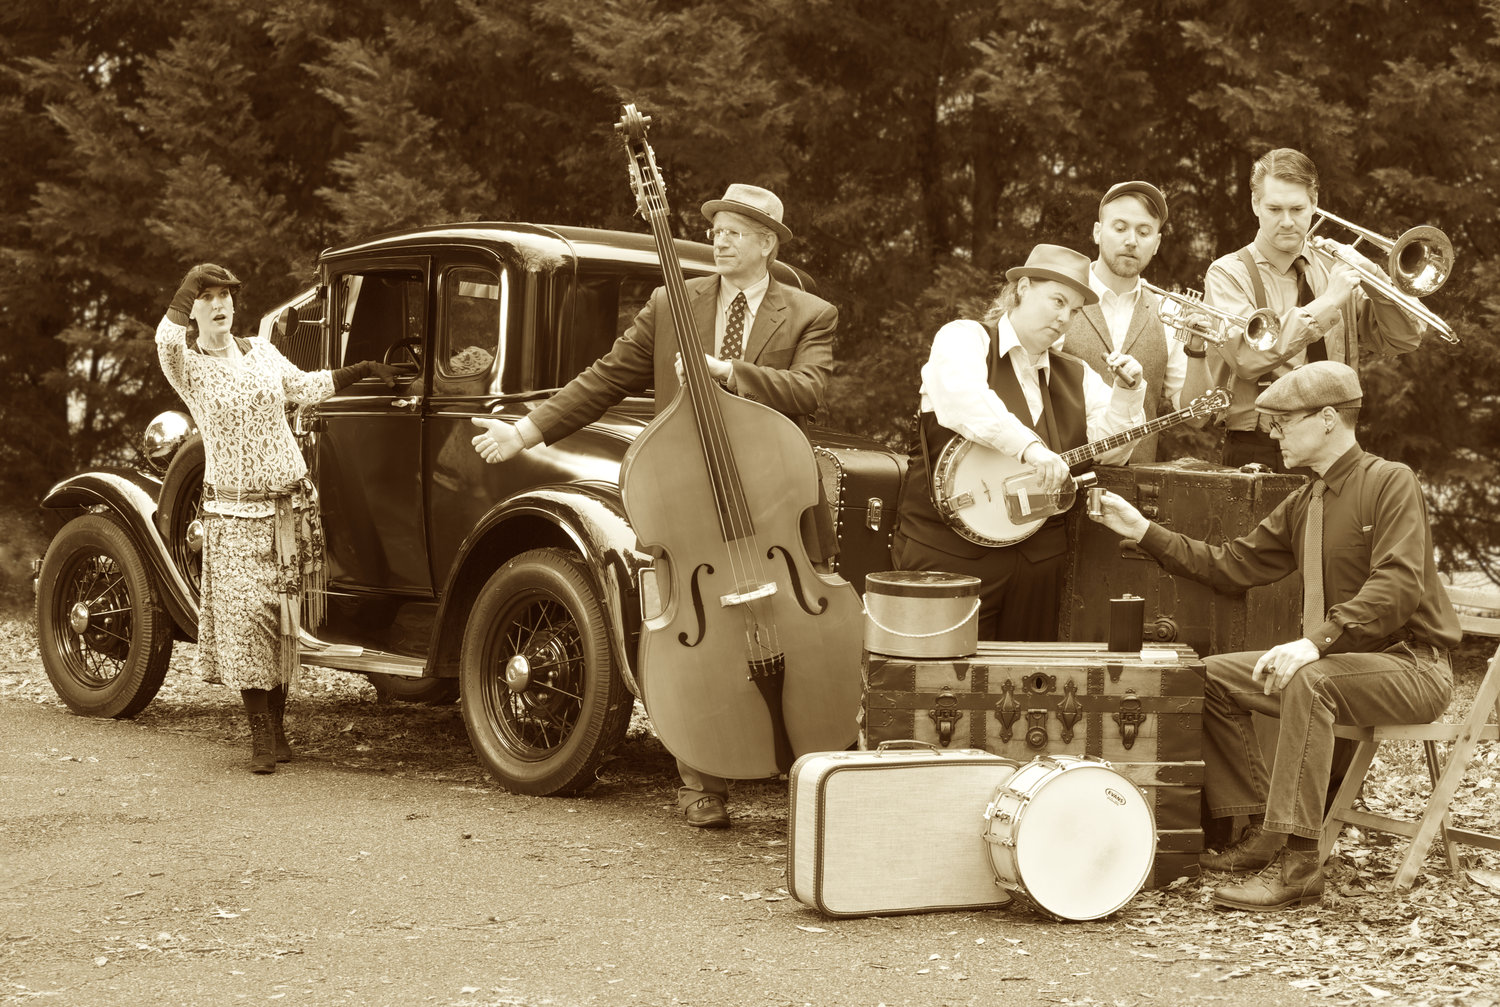 Jugtime+band+photo.jpg?format=1500w